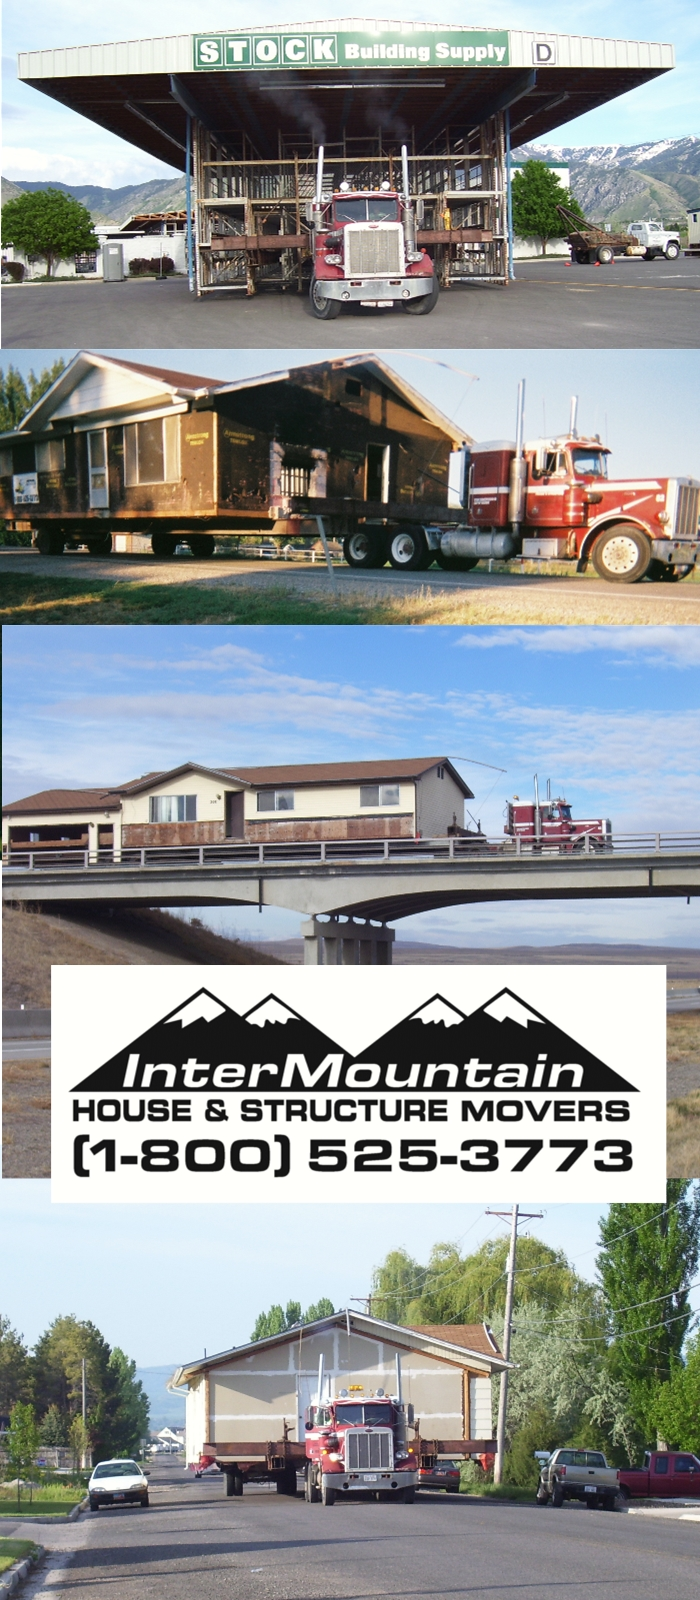 Intermountain House and Structure Movers